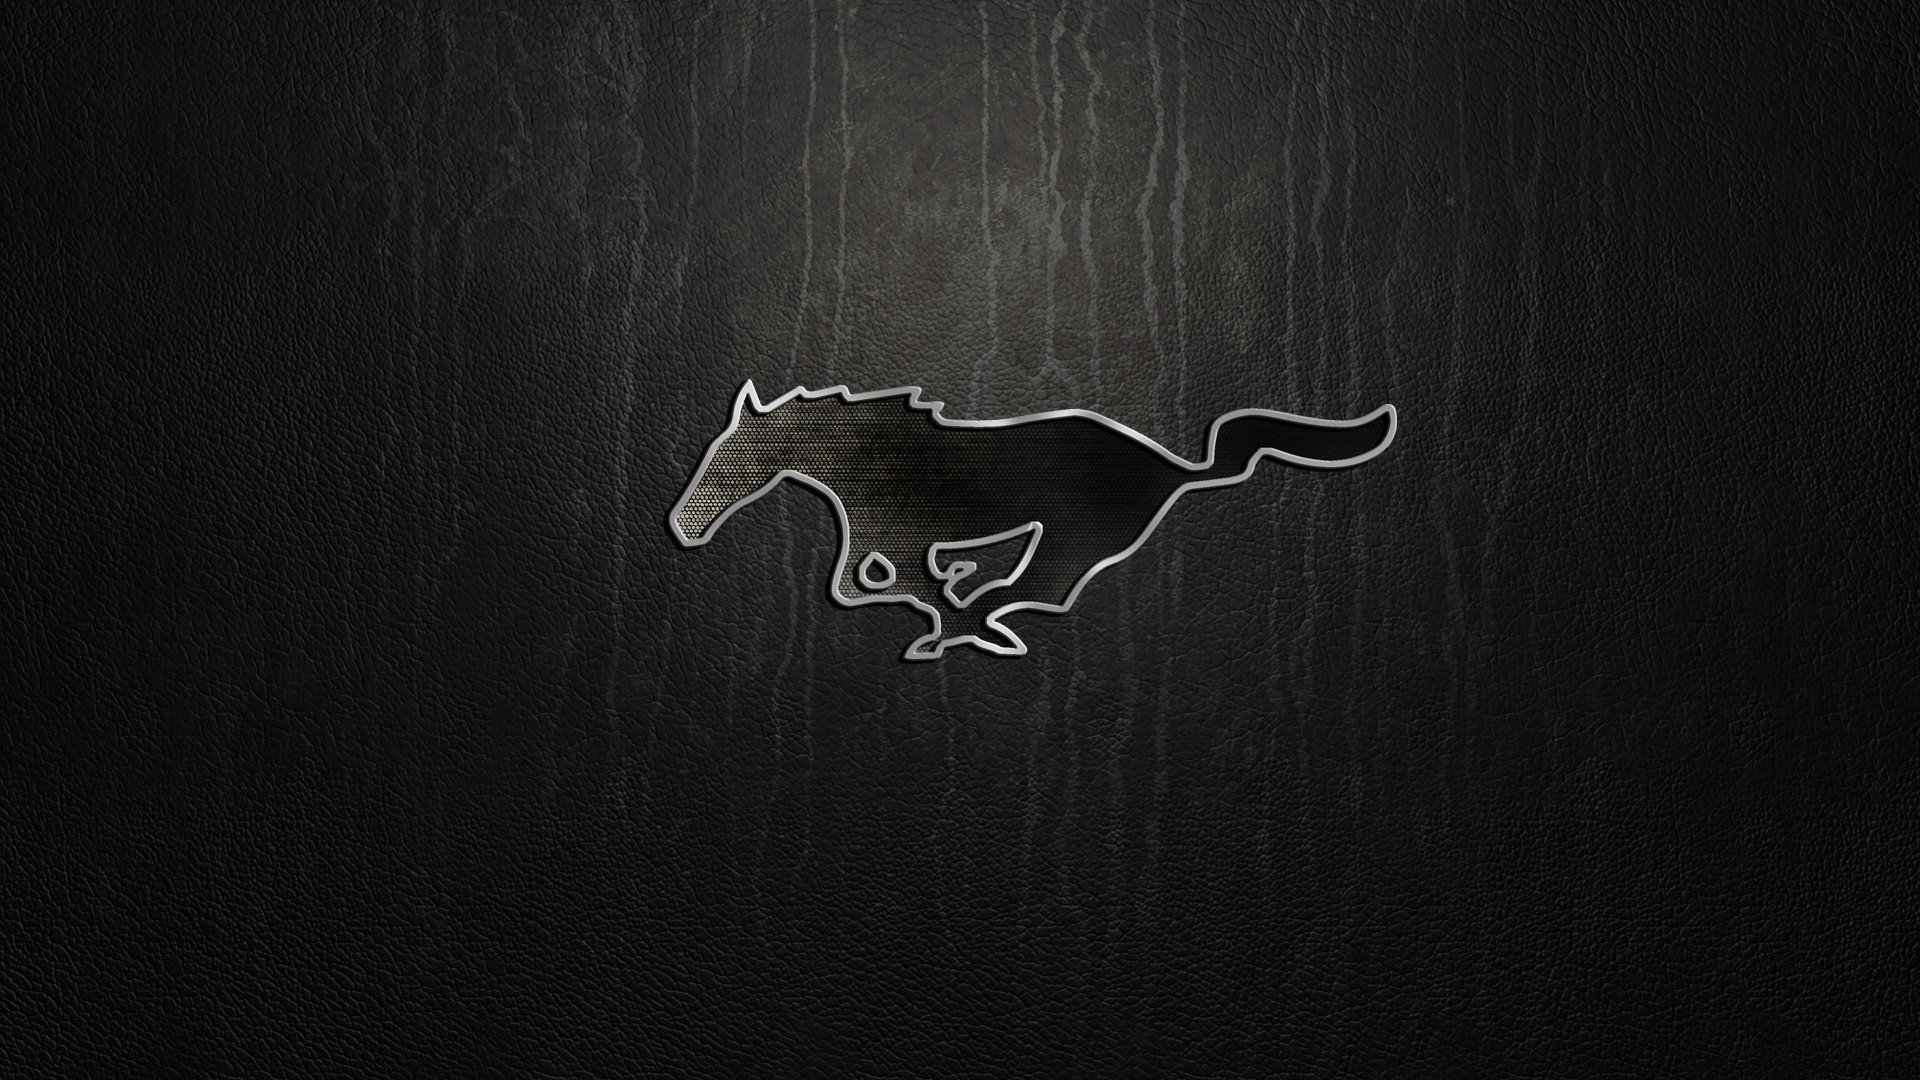 Mustang Logo Wallpaper For Iphone #gtc